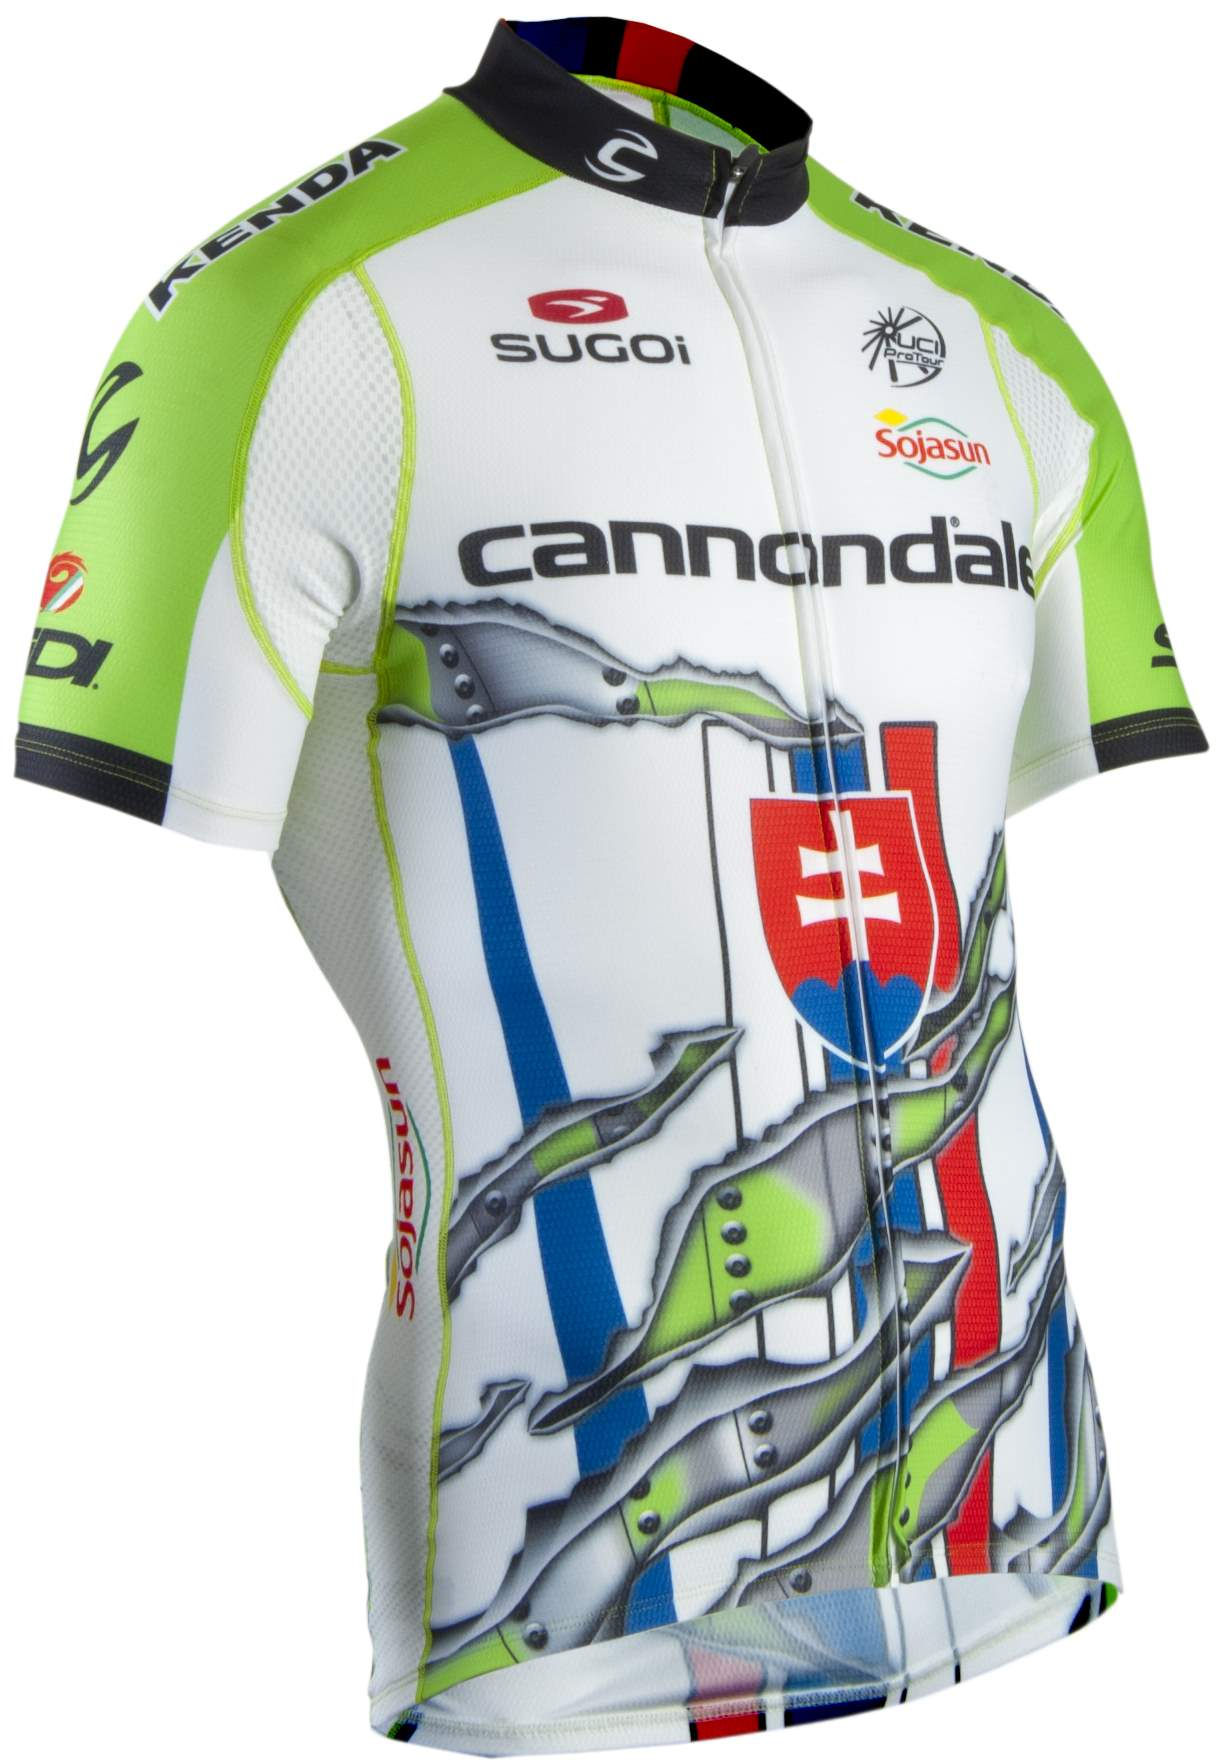 Peter Sagan's new custom jersey-front